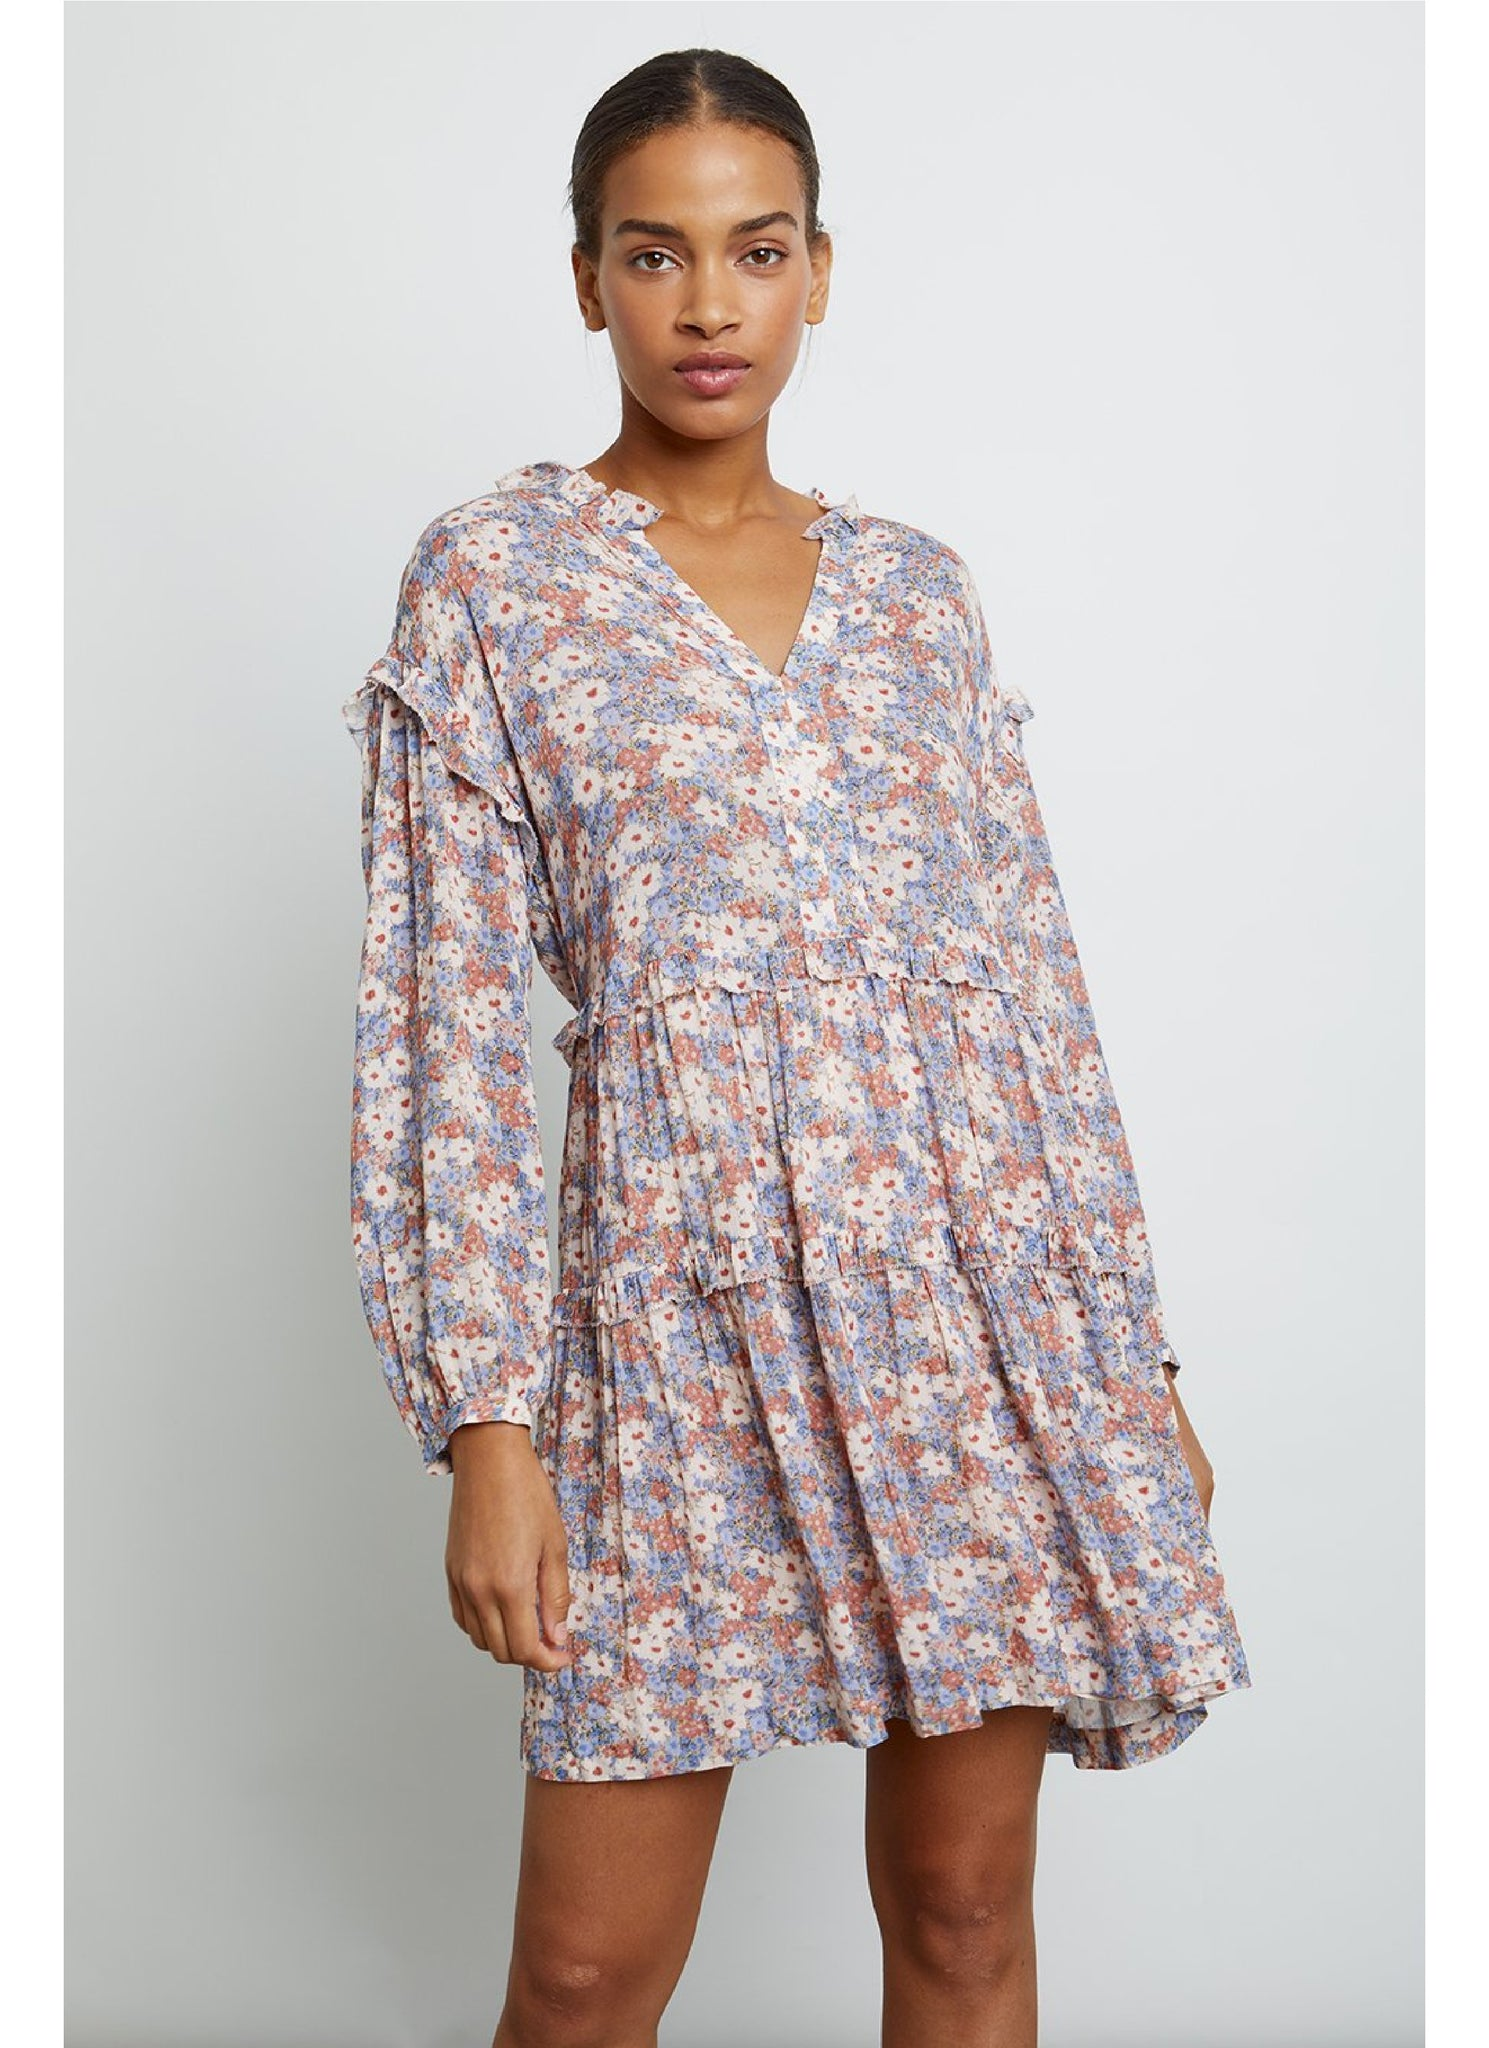 Poppie Dress in Pink Jasmine